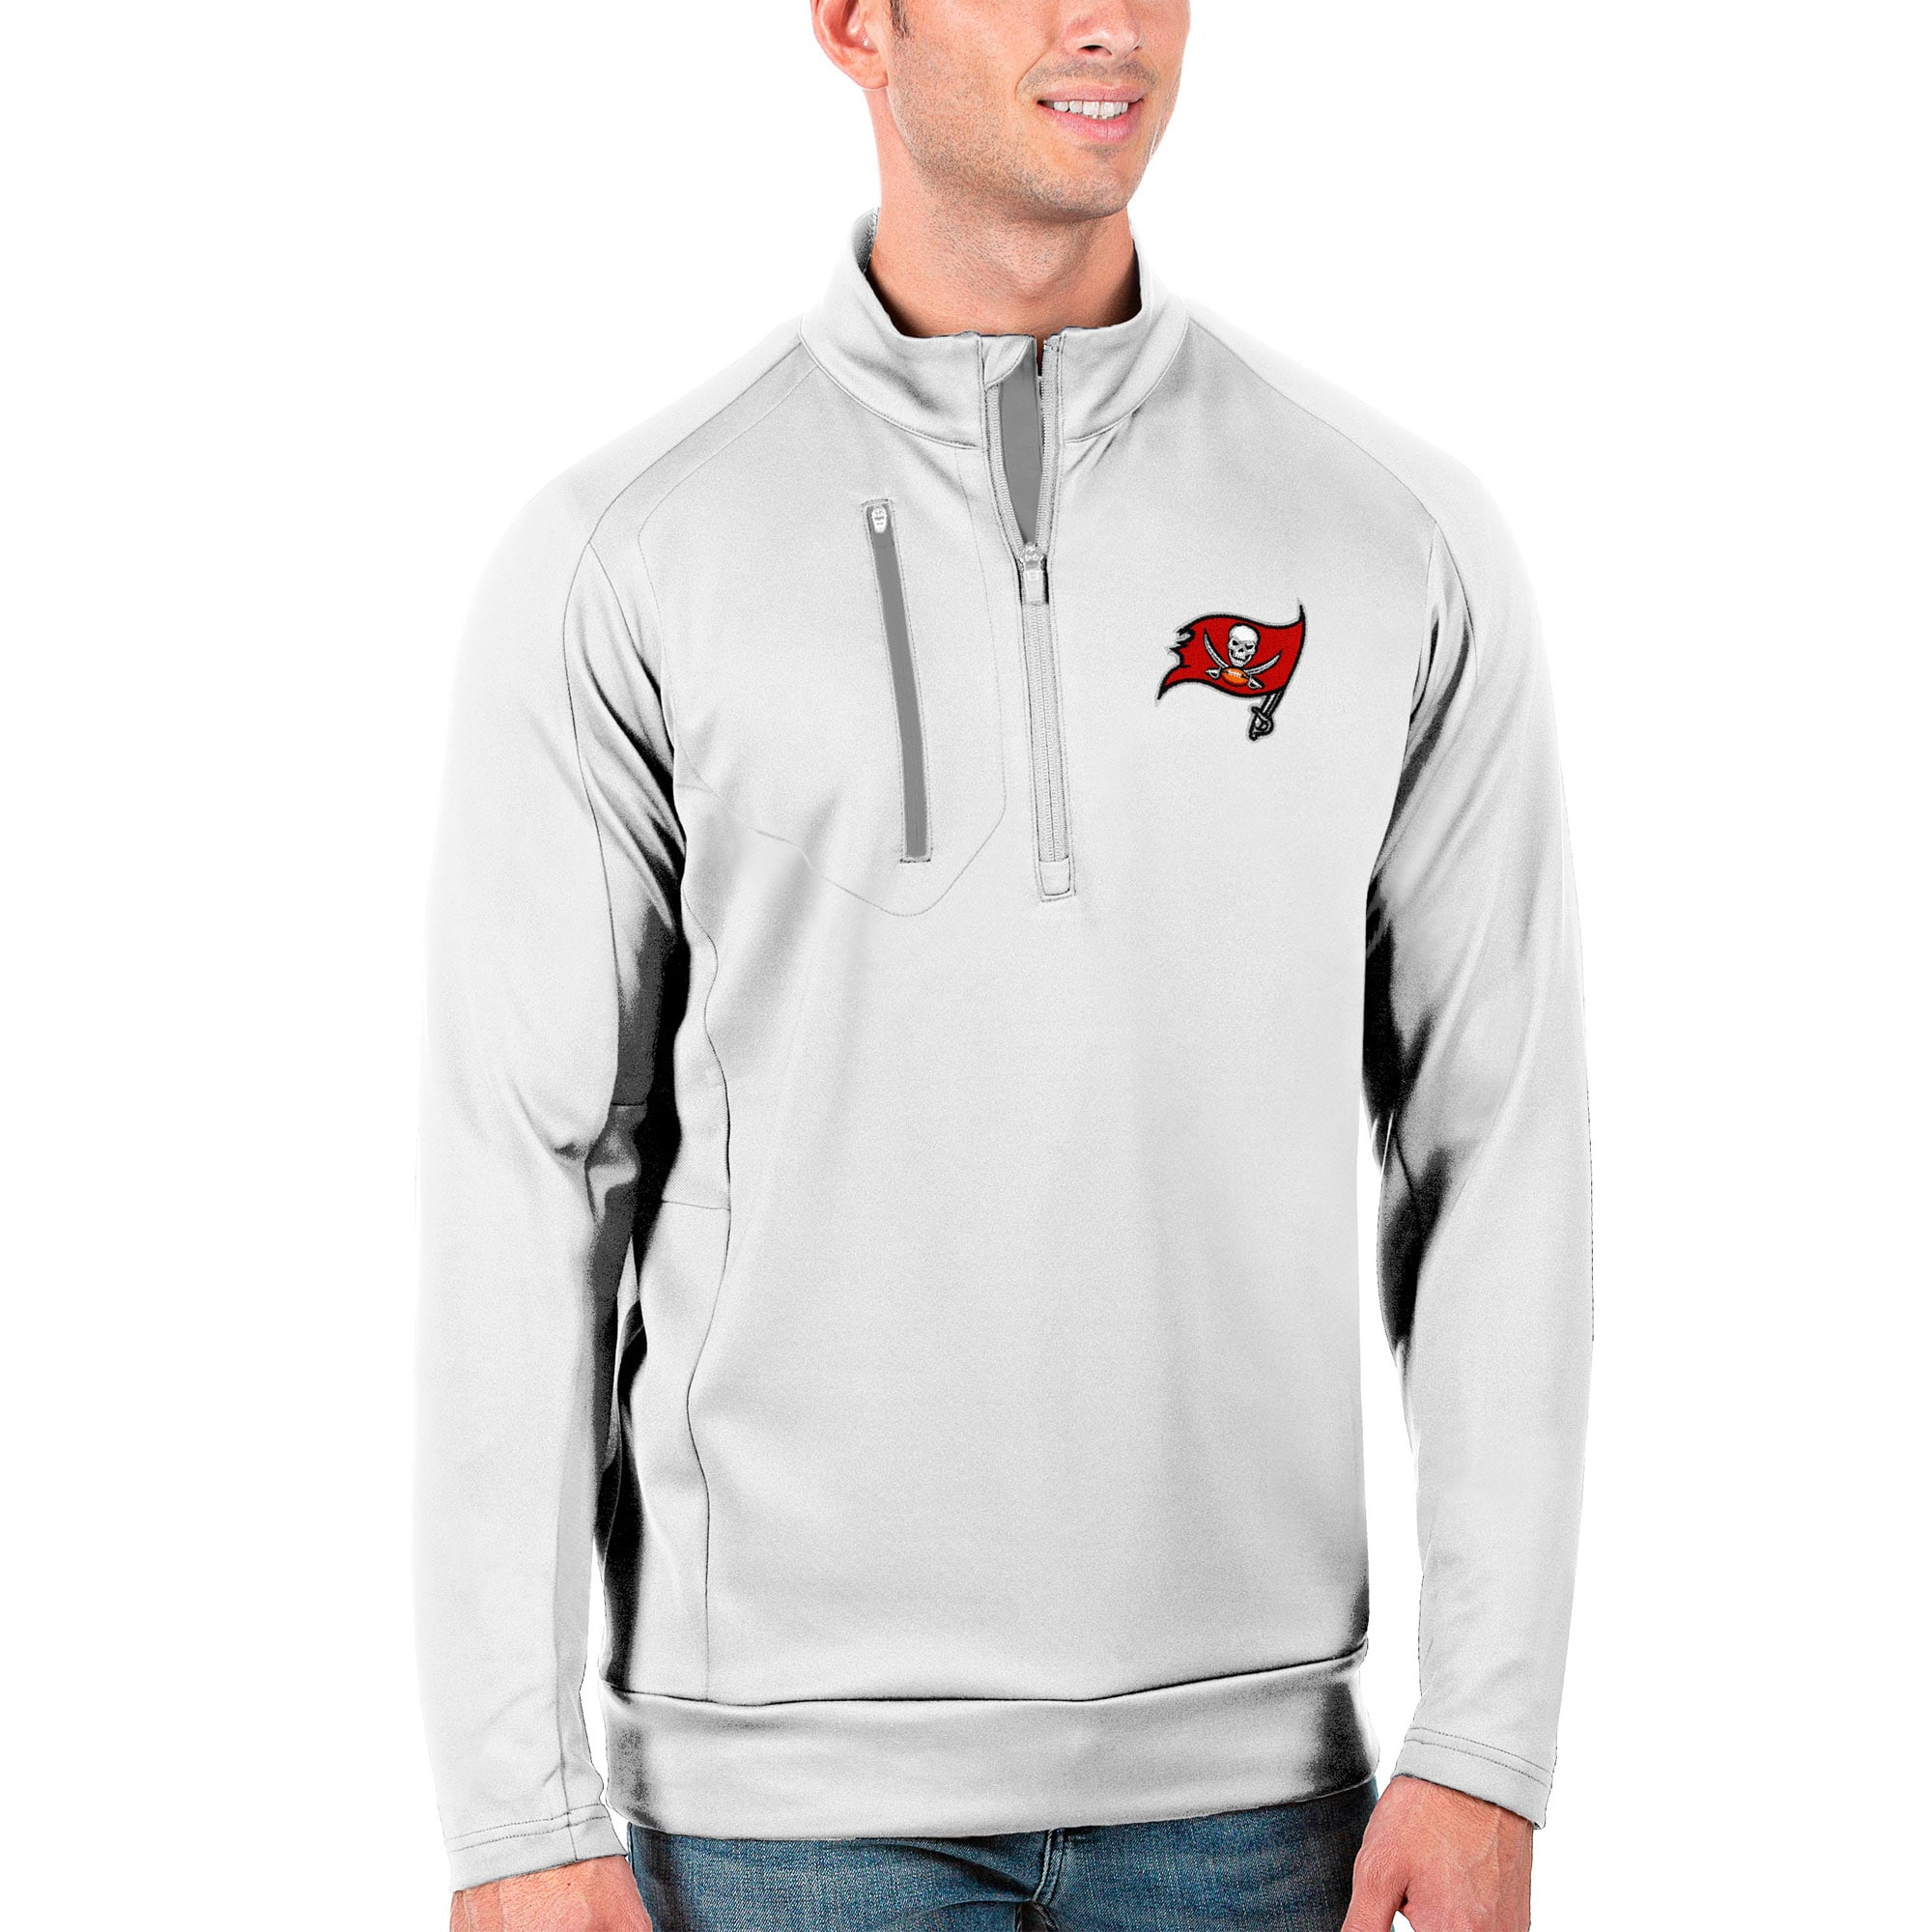 Tampa Bay Buccaneers Antigua Generation Quarter-Zip Pullover Jacket - White/Silver